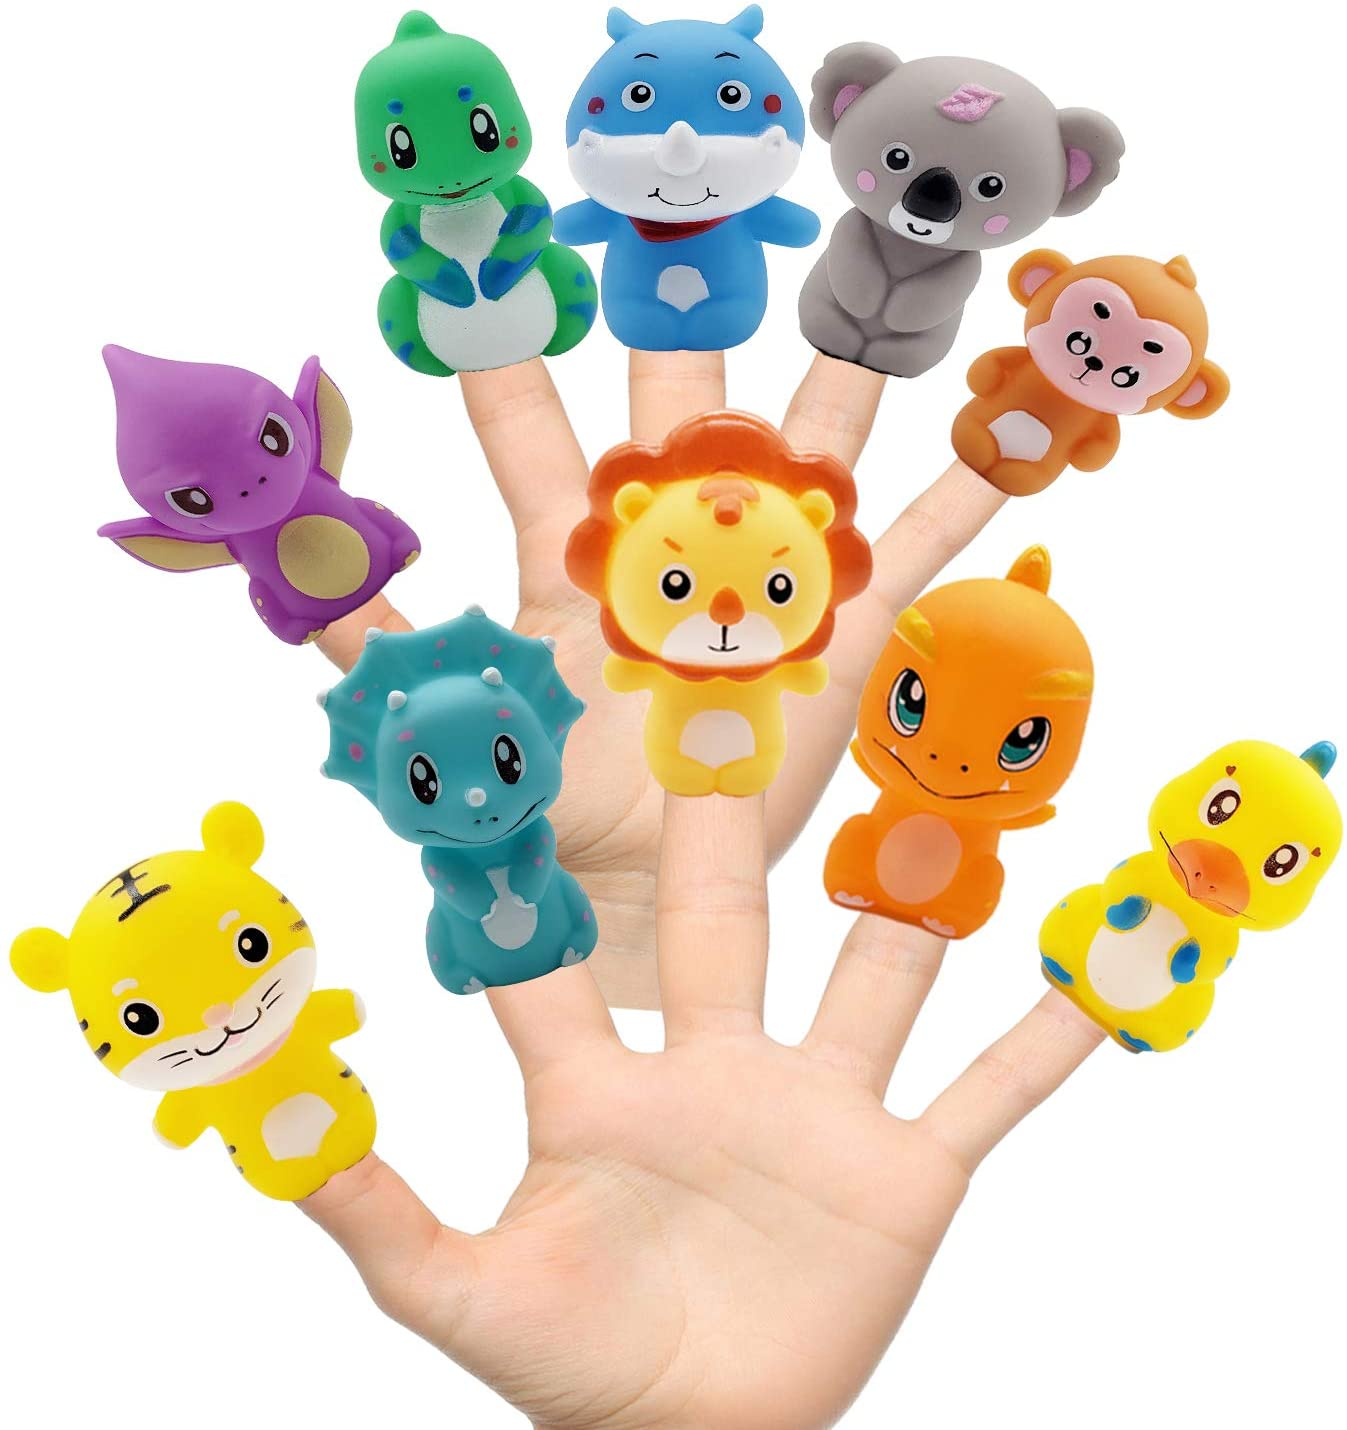 HUAIOU Rubber Animals Finger Puppets for Todders,Bath Toys, Colorful Storytelling Toys for Teaching Show, Goodie Bags Fillers, Classroom Prizes, Pinata Fillers , Stocking Stuffer, Kids Gift